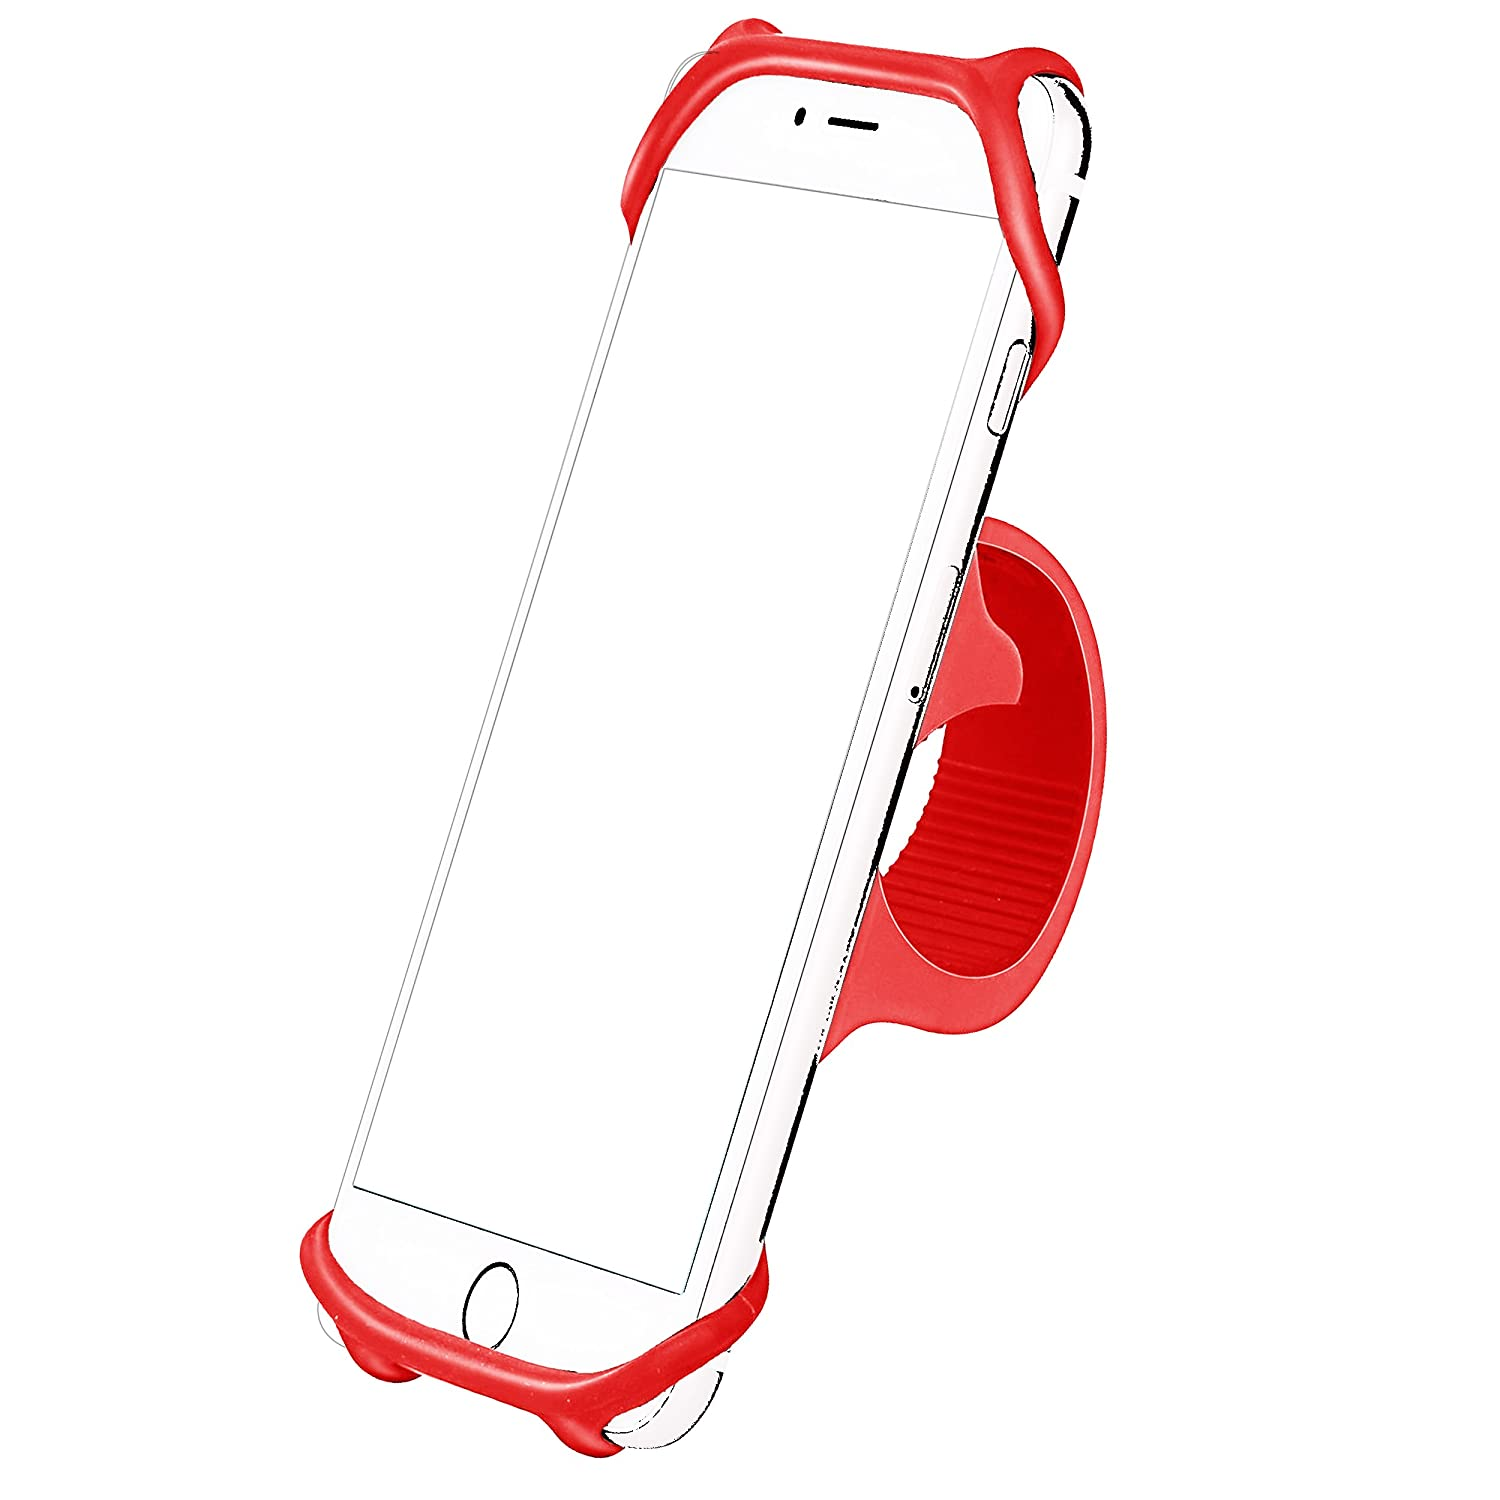 AILUN Bike Silicone Strap Mount Holder,Motorcycle by Phone Mount by for iPhone X/8Plus/8/7Plus/7/6S,Samsung Galaxy S9/S9+,S8+/S8/S7/S6,LG HTC and all 4-6 Inch Smartphones[Yellow] Siania